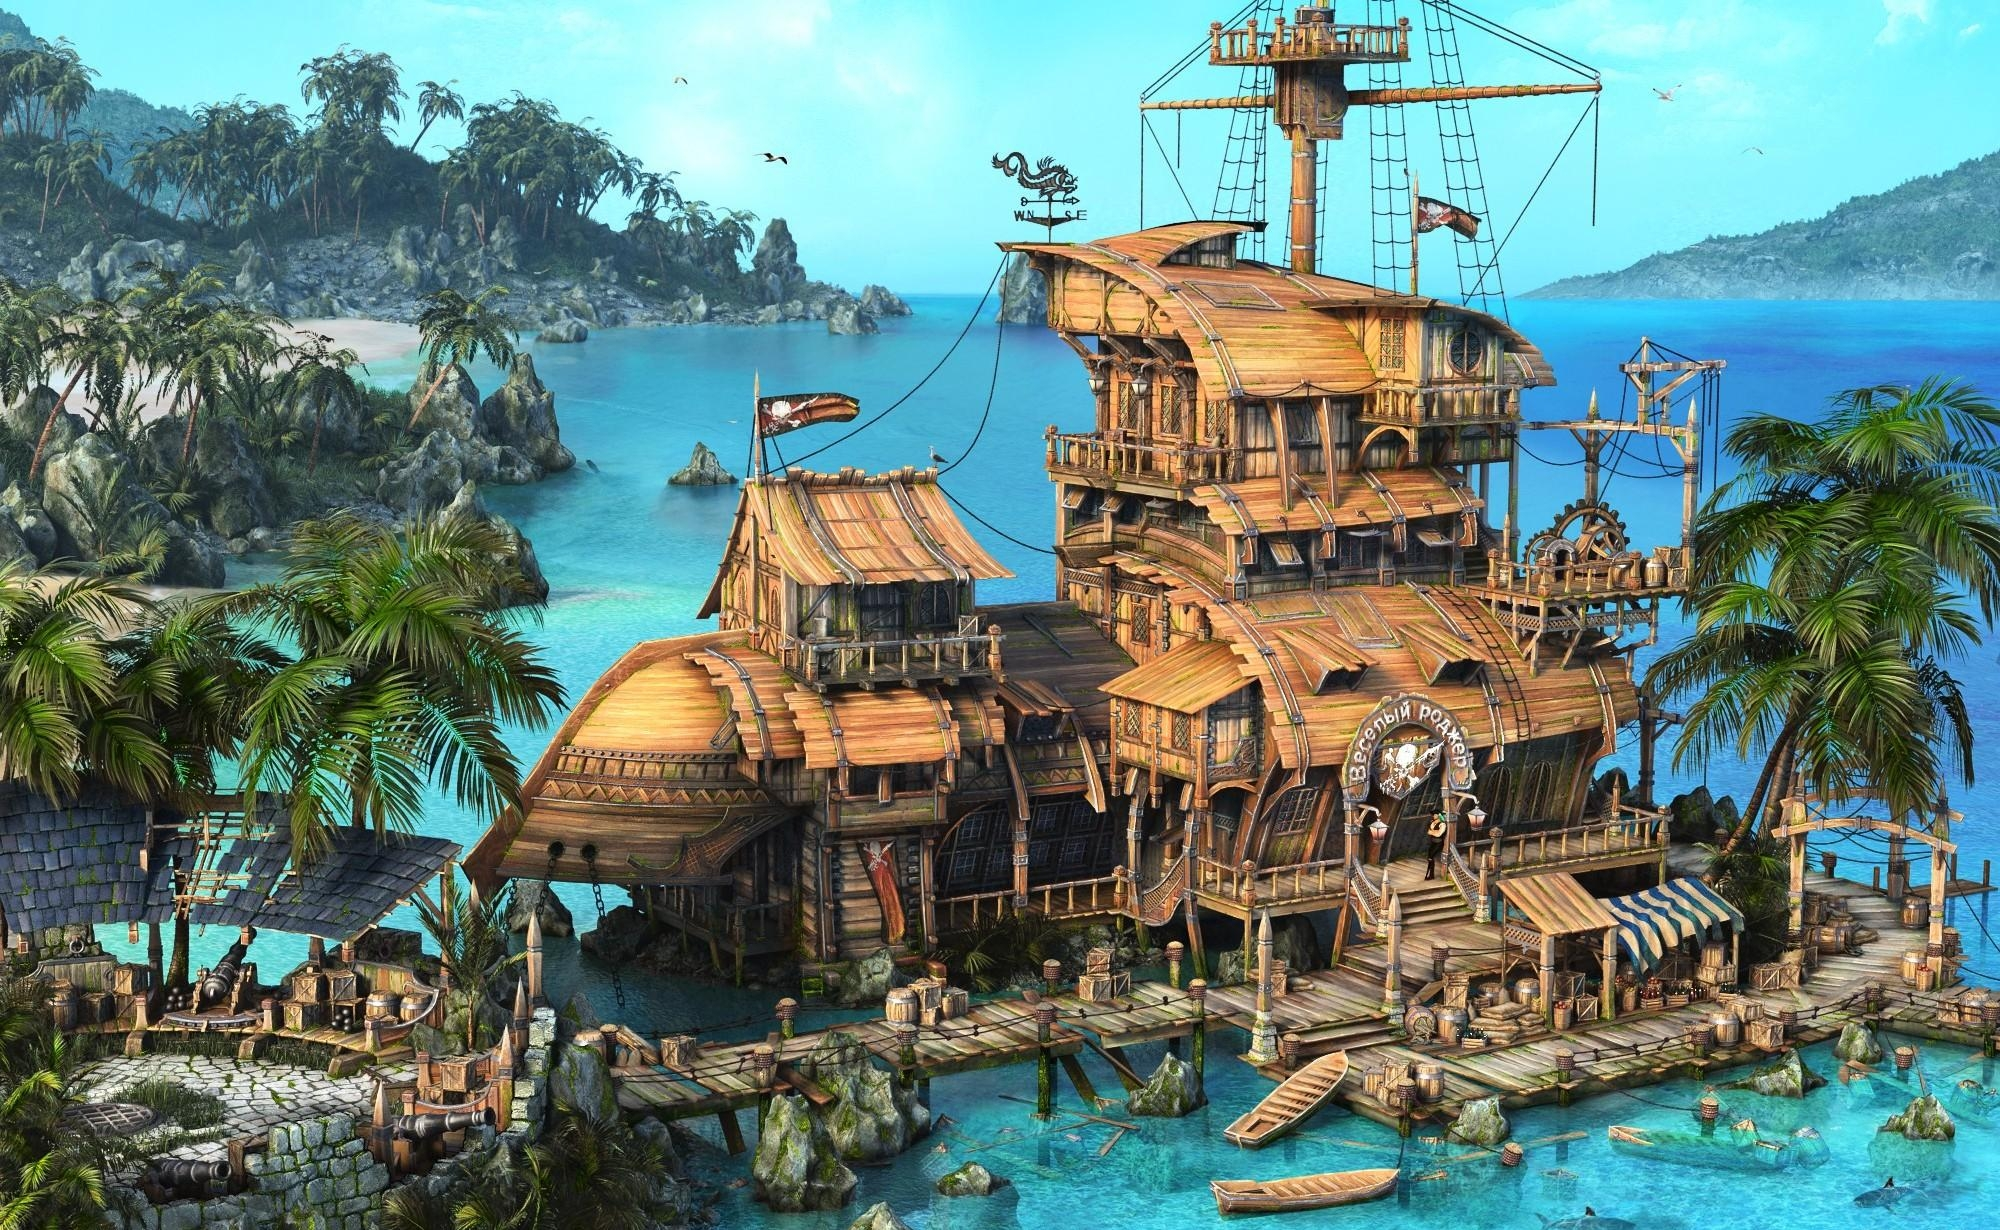 63705 download wallpaper Fantasy, Island, Ship, House, Ocean, Palms screensavers and pictures for free